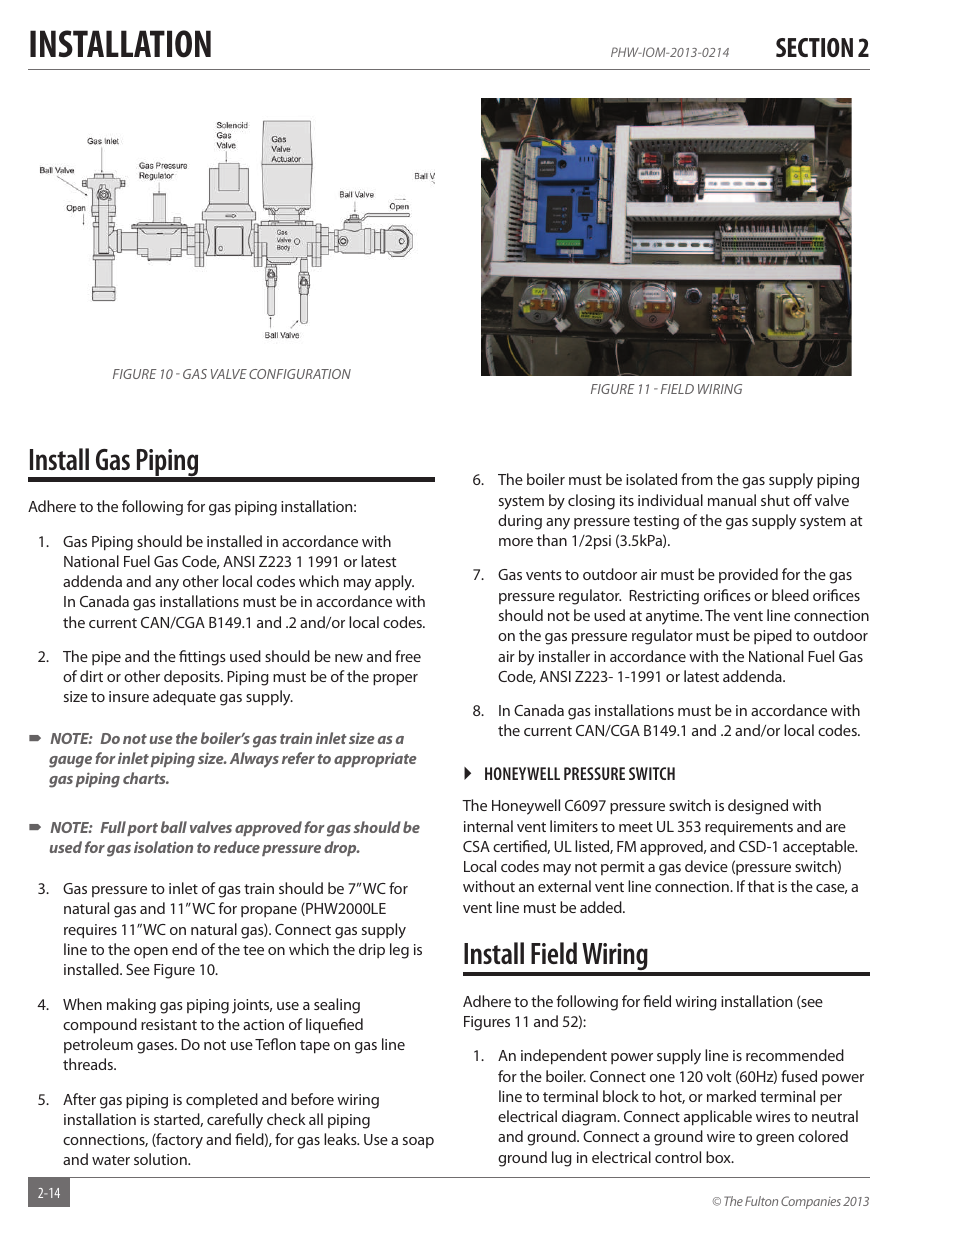 Installation Install Gas Piping Field Wiring Fulton. Installation Install Gas Piping Field Wiring Fulton Pulse Hw Phw Fully Condensing Hydronic Boiler User Manual Page 20 84. Wiring. For A Water Pressure Regulator Wiring Diagram At Scoala.co